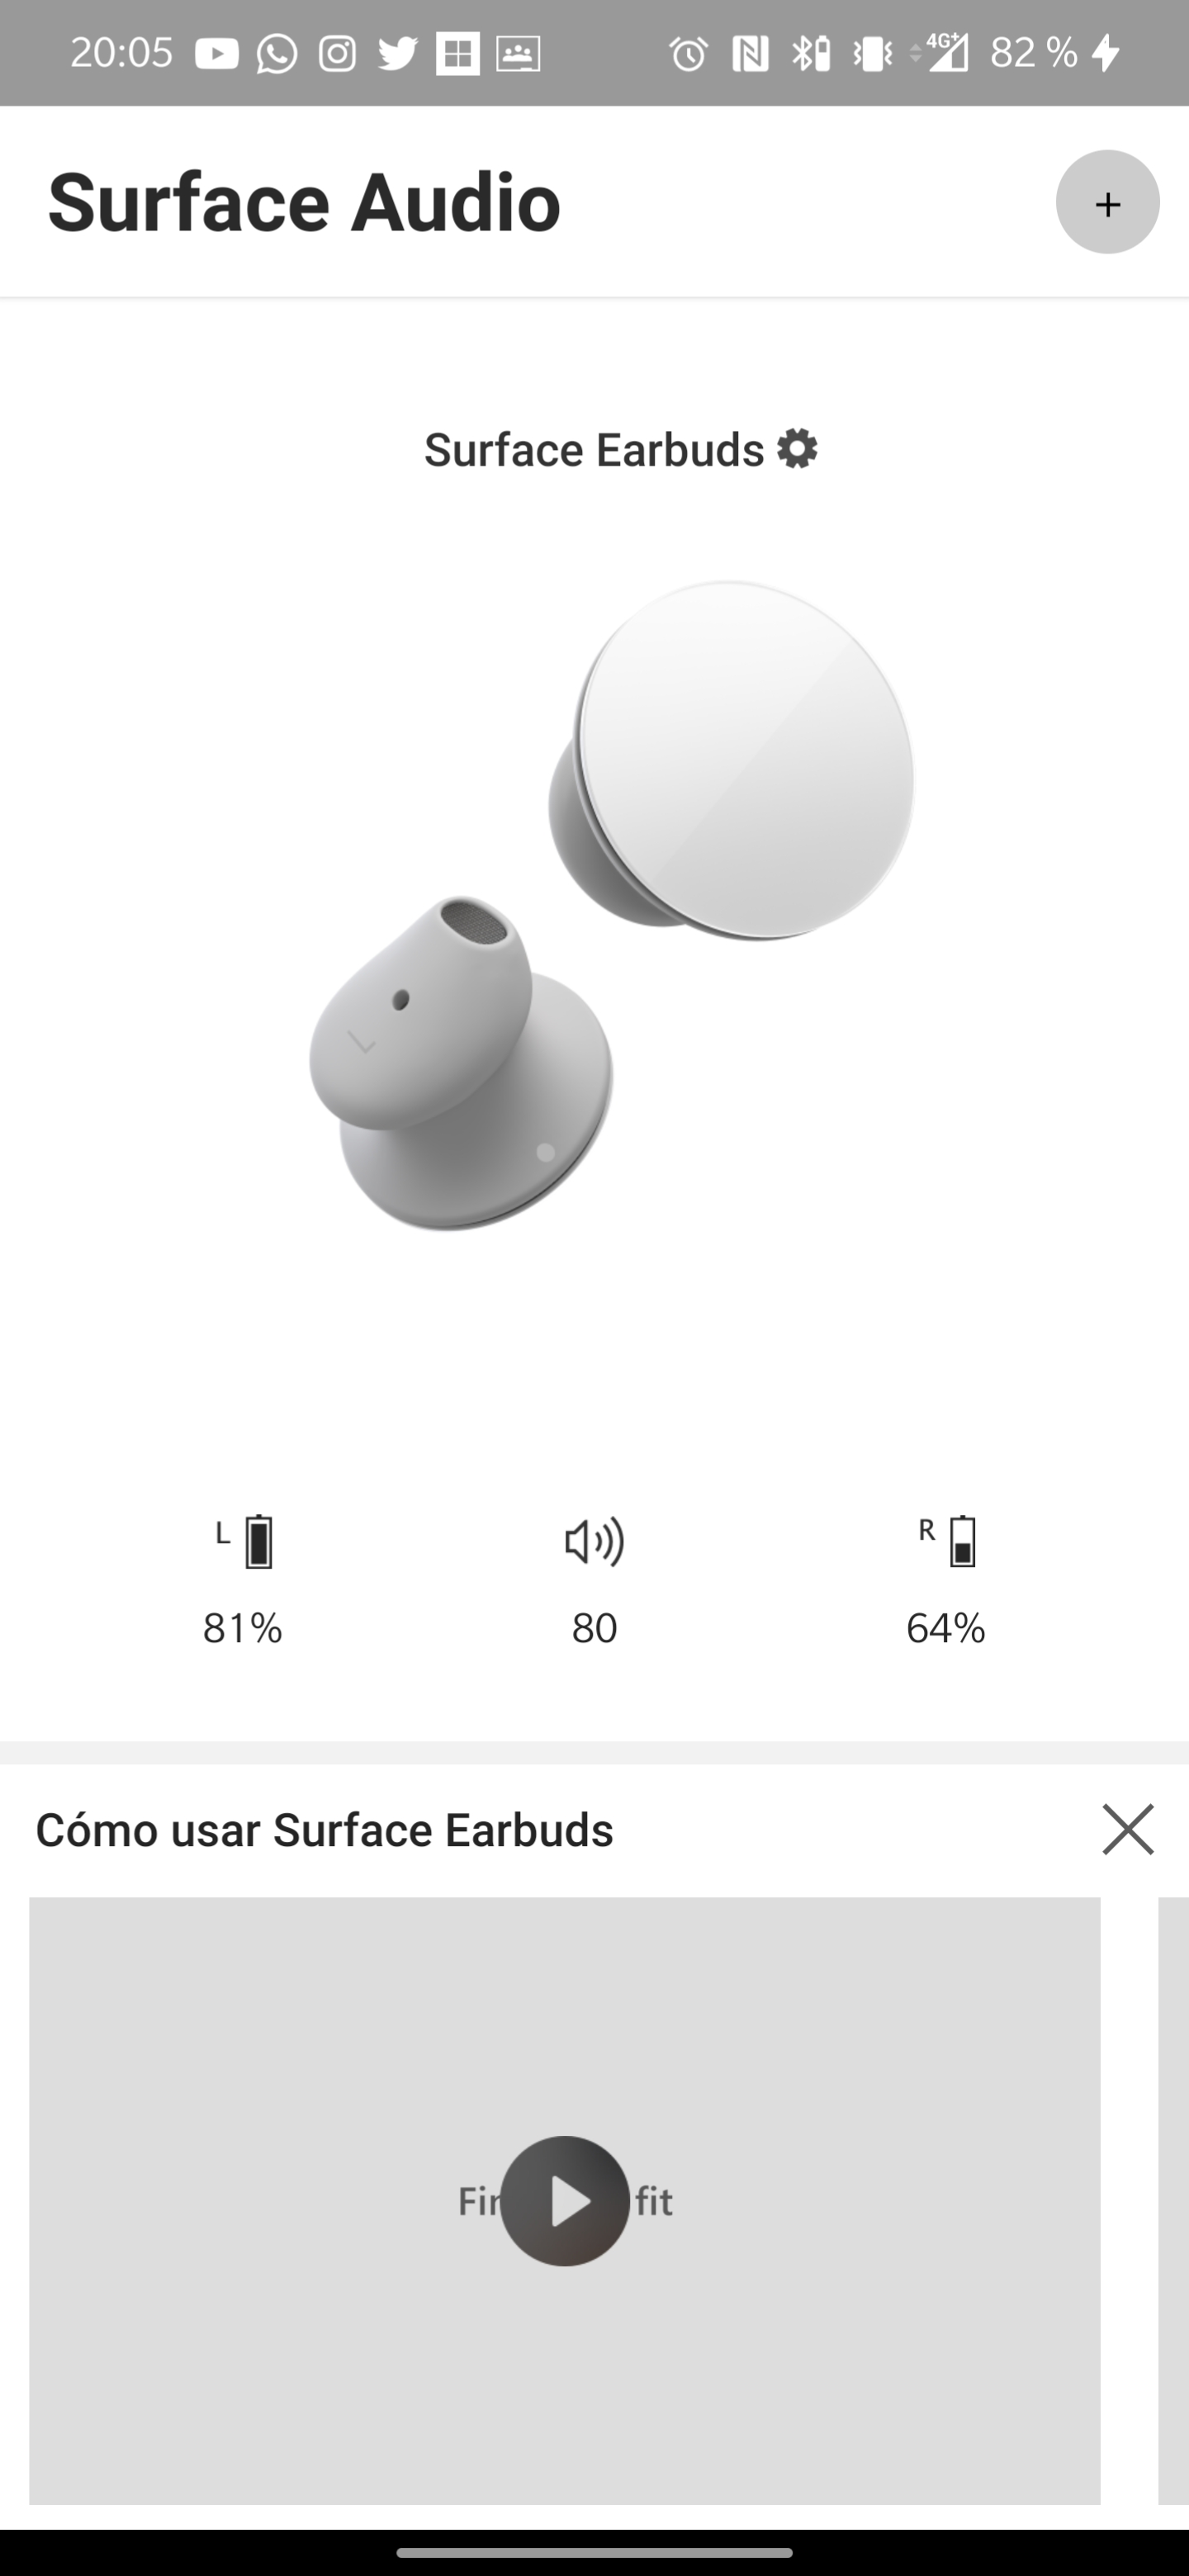 Conectar los Surface Earbuds 3